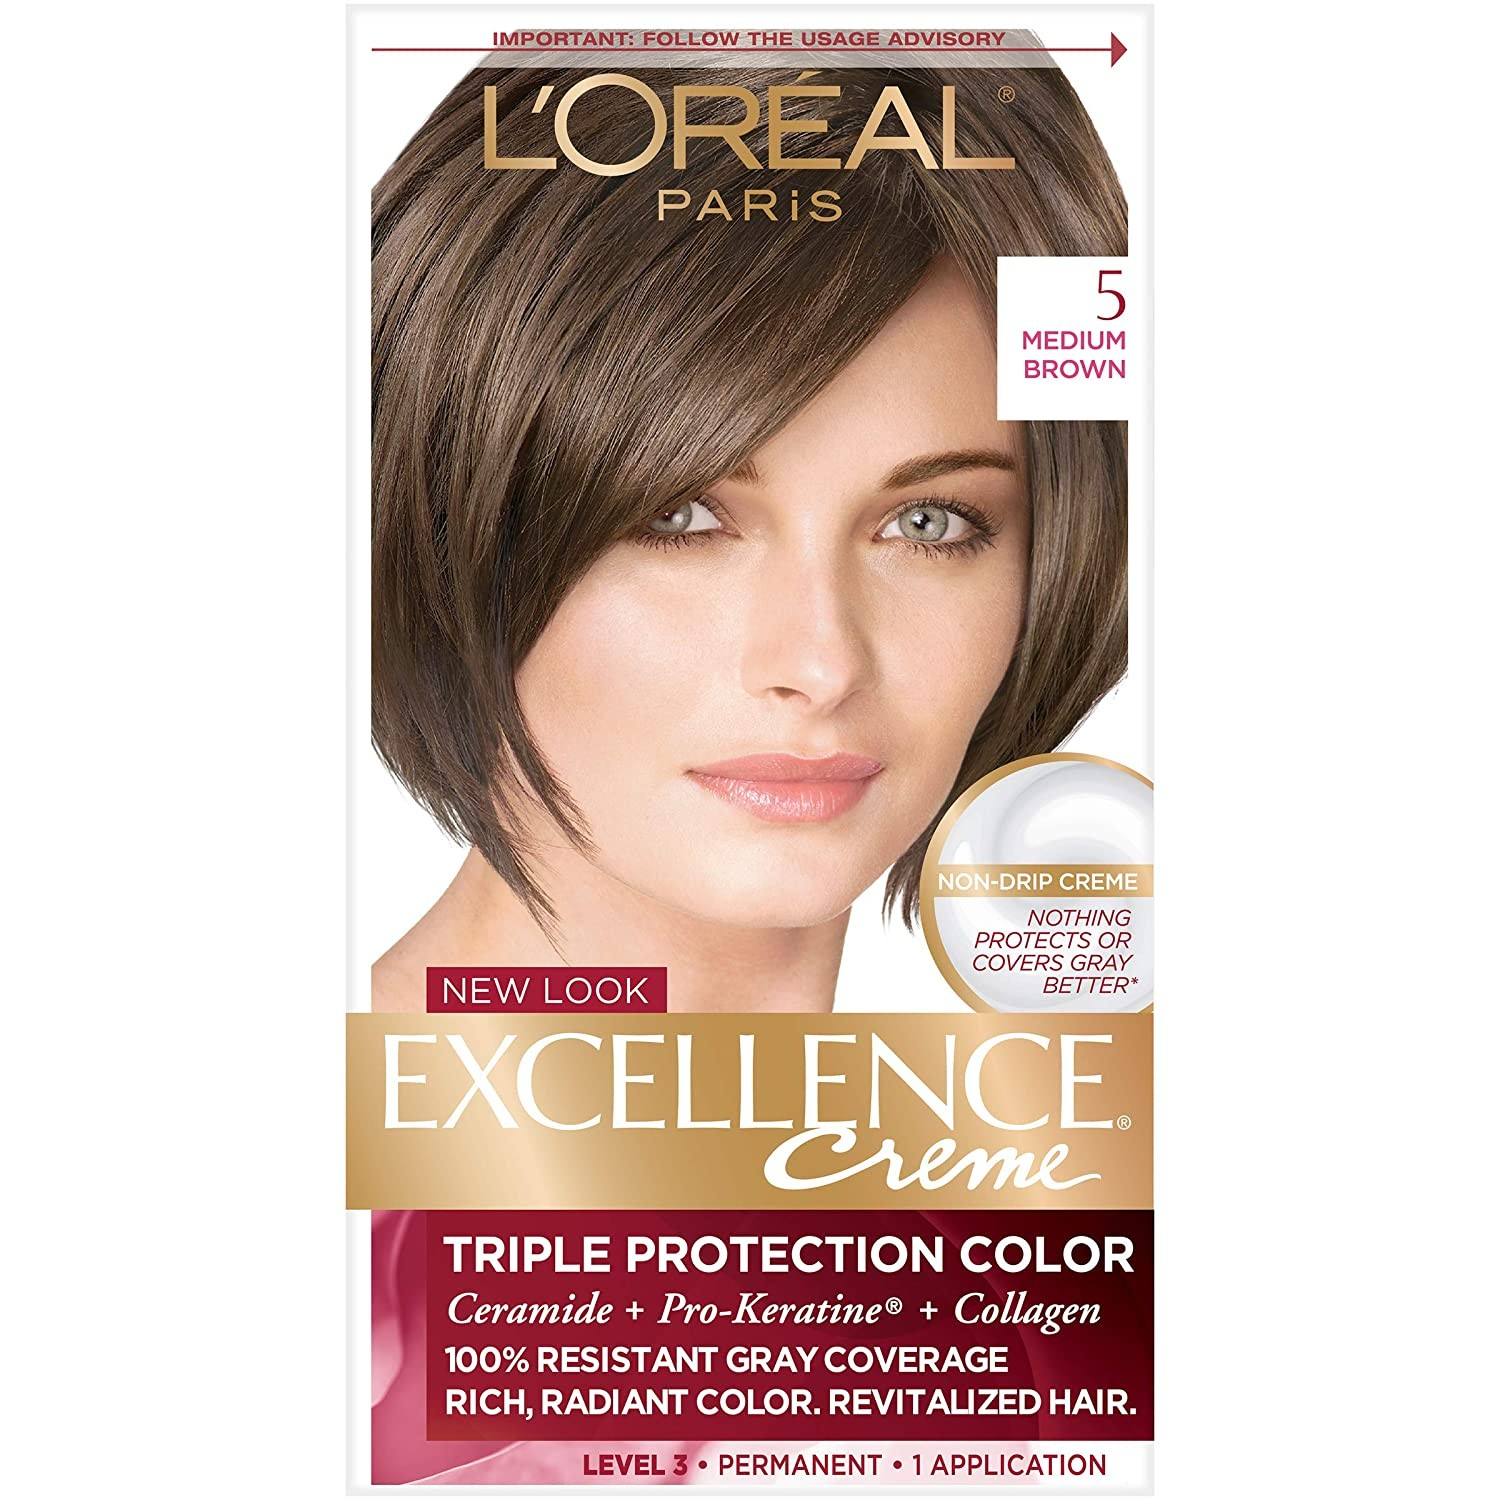 LOreal Paris Permanent Hair Color